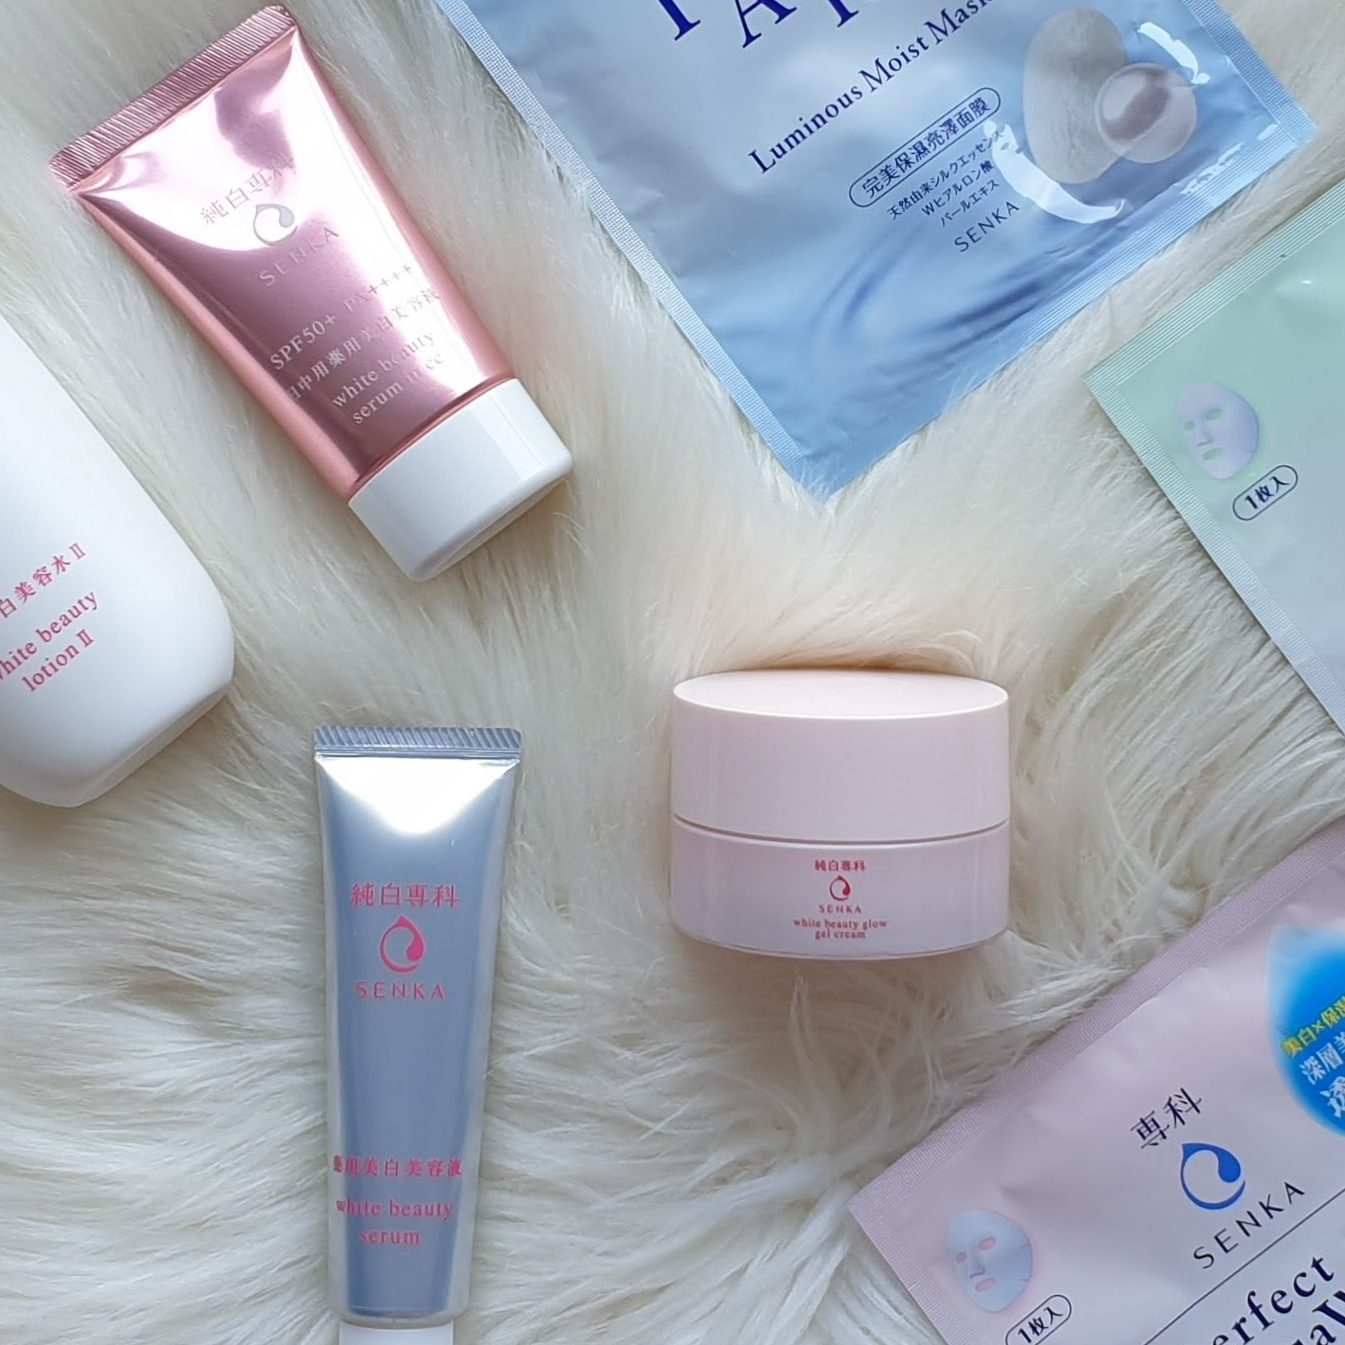 Brighten Up with Senka Skincare & Face Masks